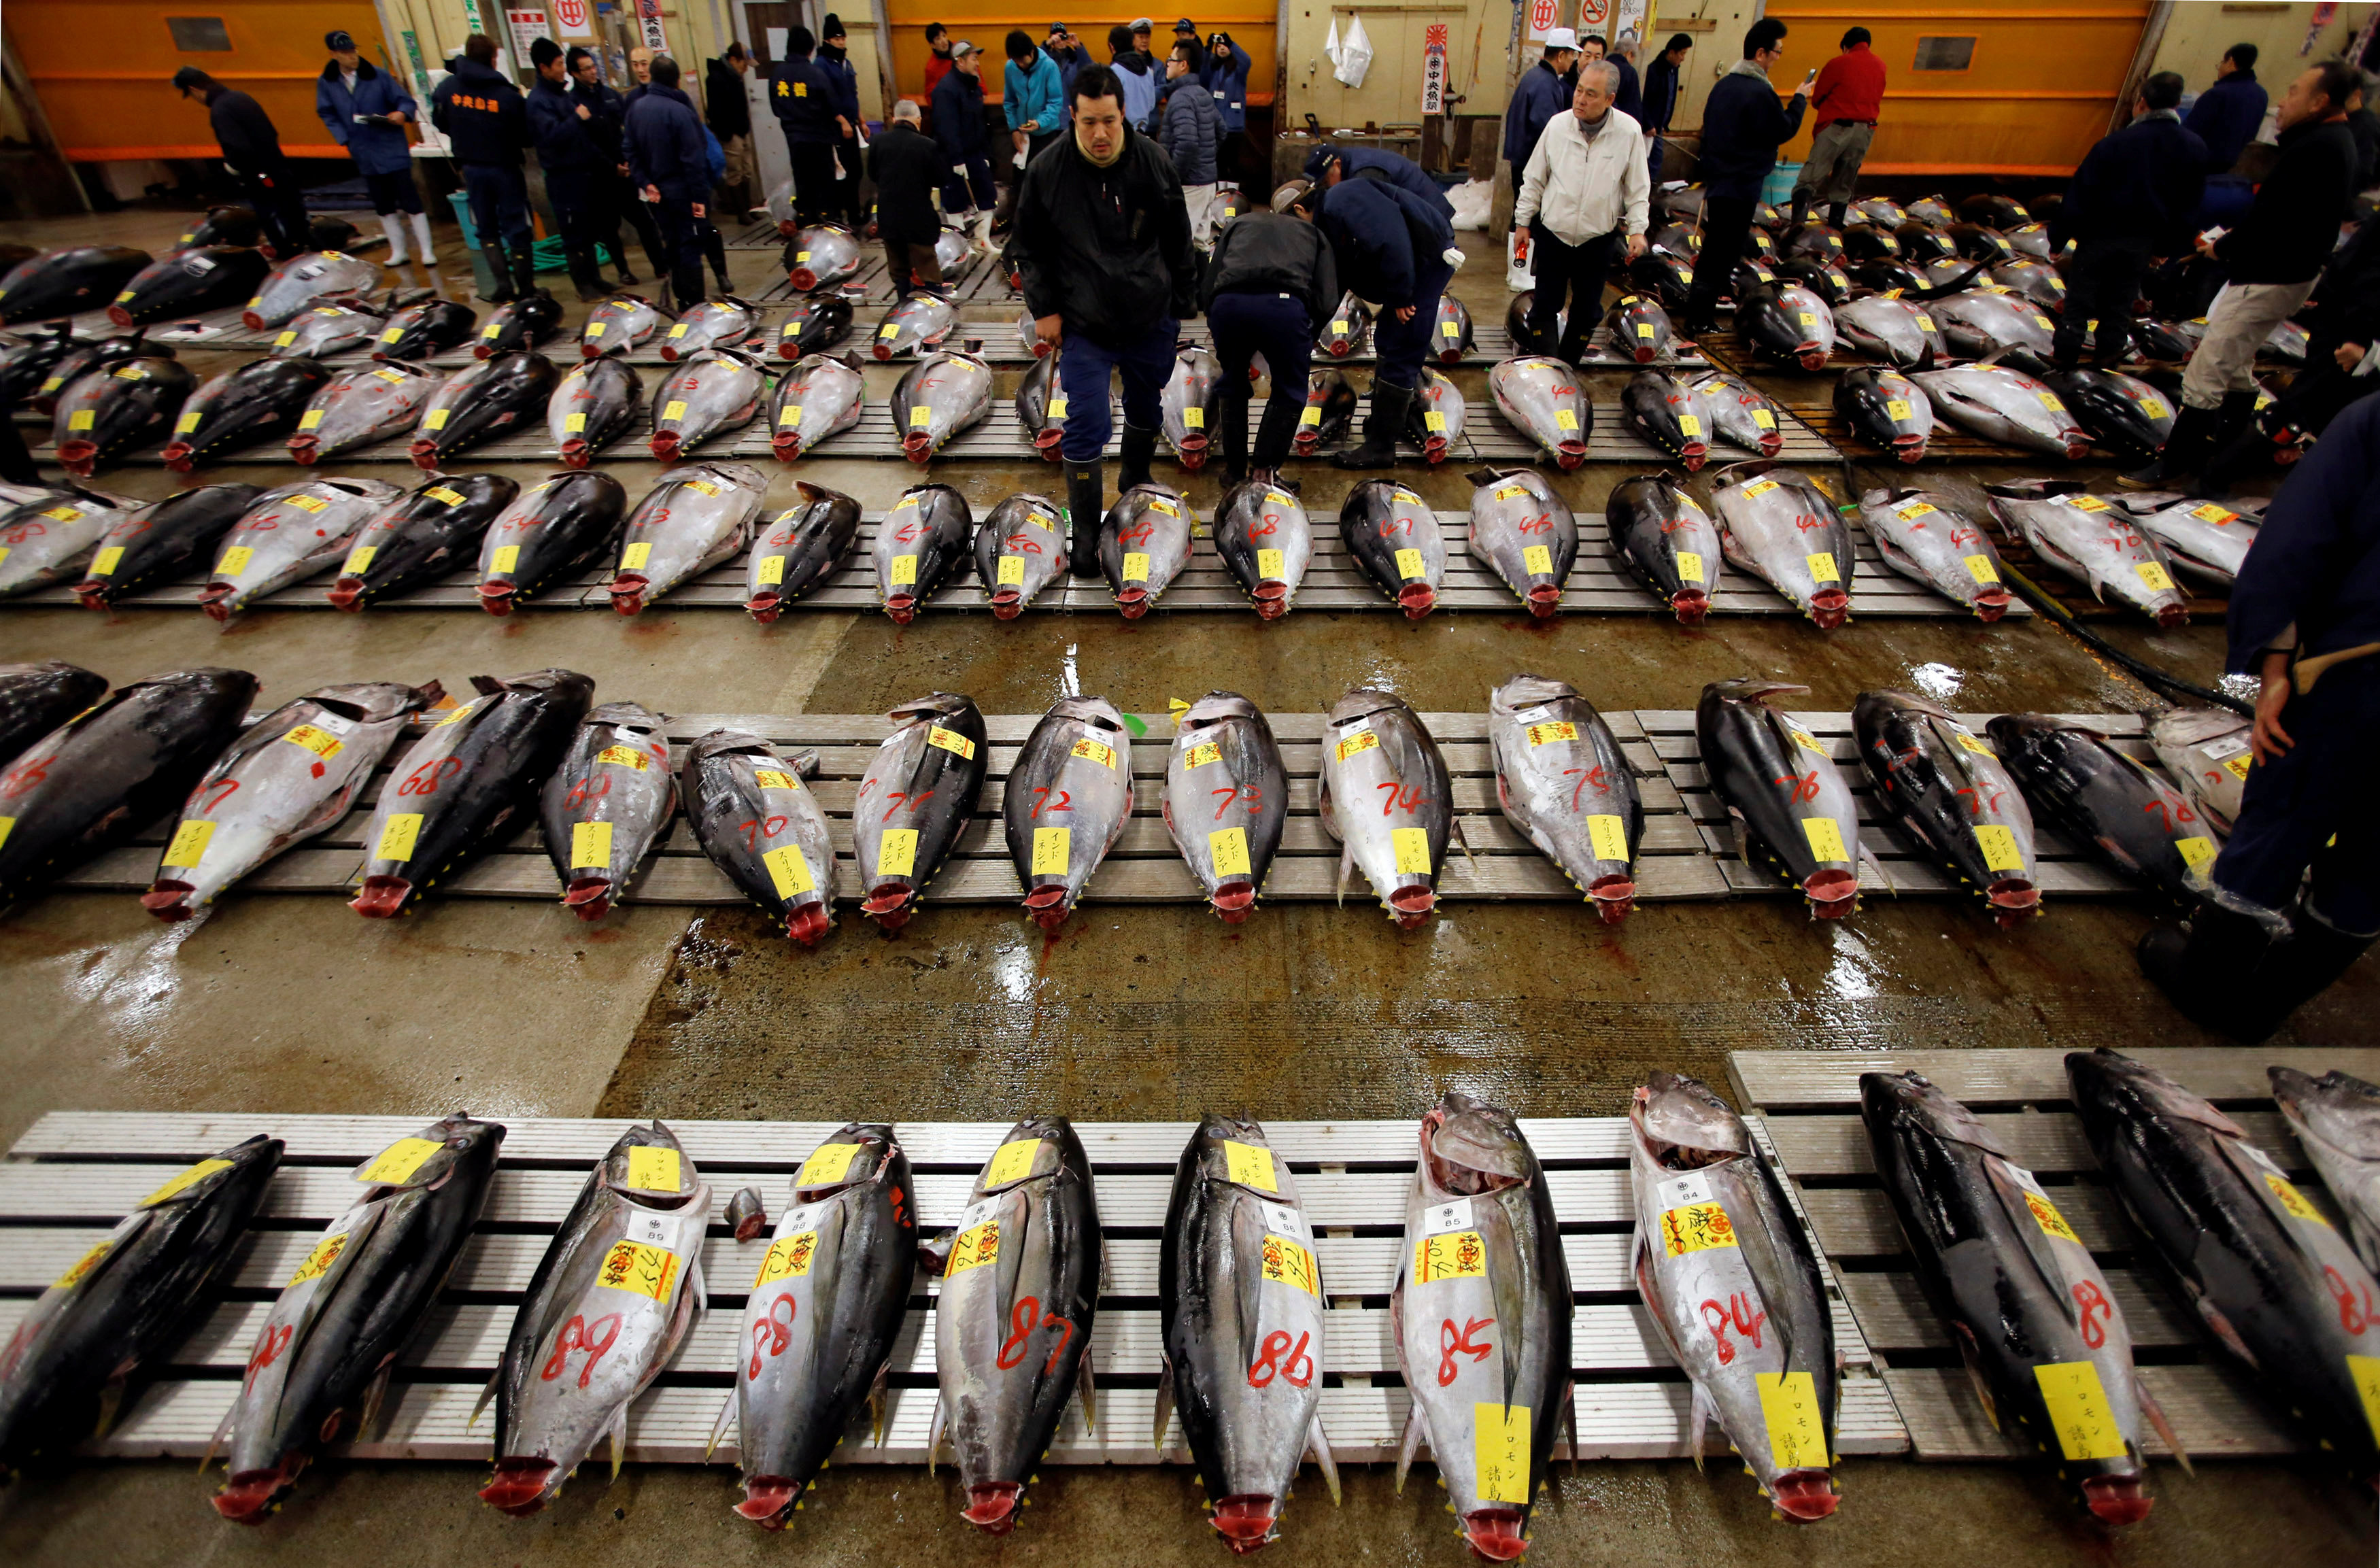 Wholesalers survey tuna at the Tsukiji fish market in Tokyo before the New Year's auction on Jan. 5. The plan to relocate the market in November will reportedly be postponed. | REUTERS